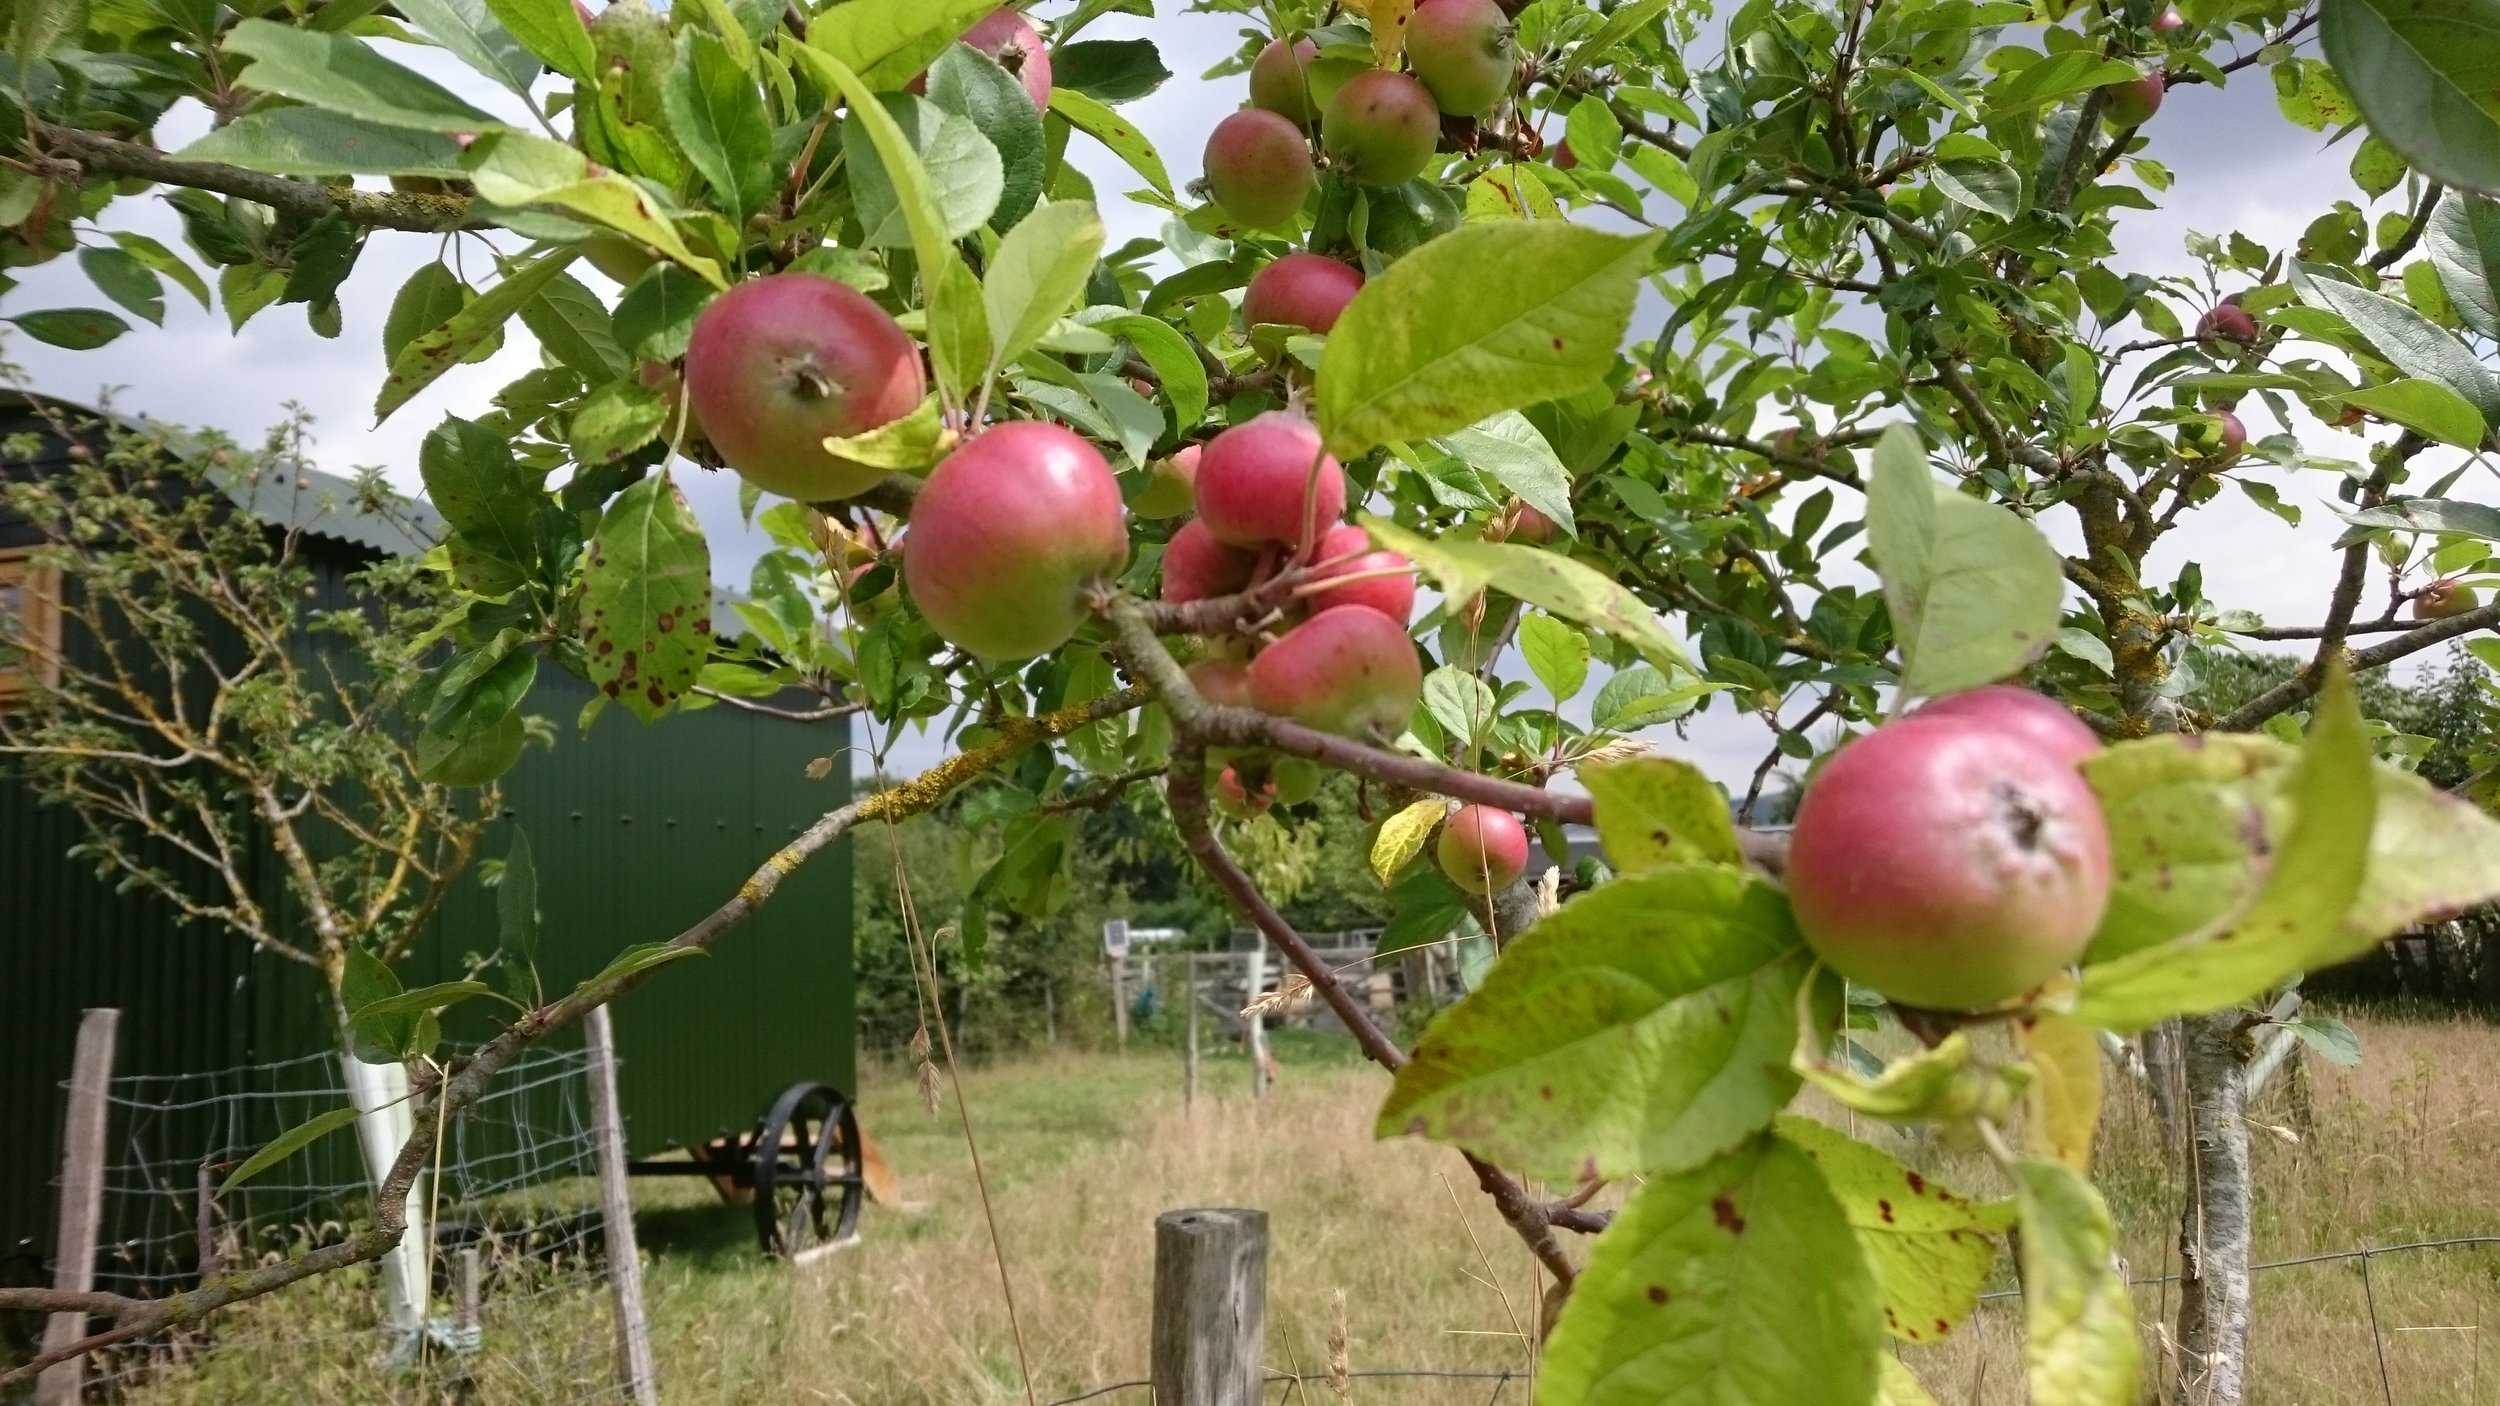 Apples growing well near the pigs